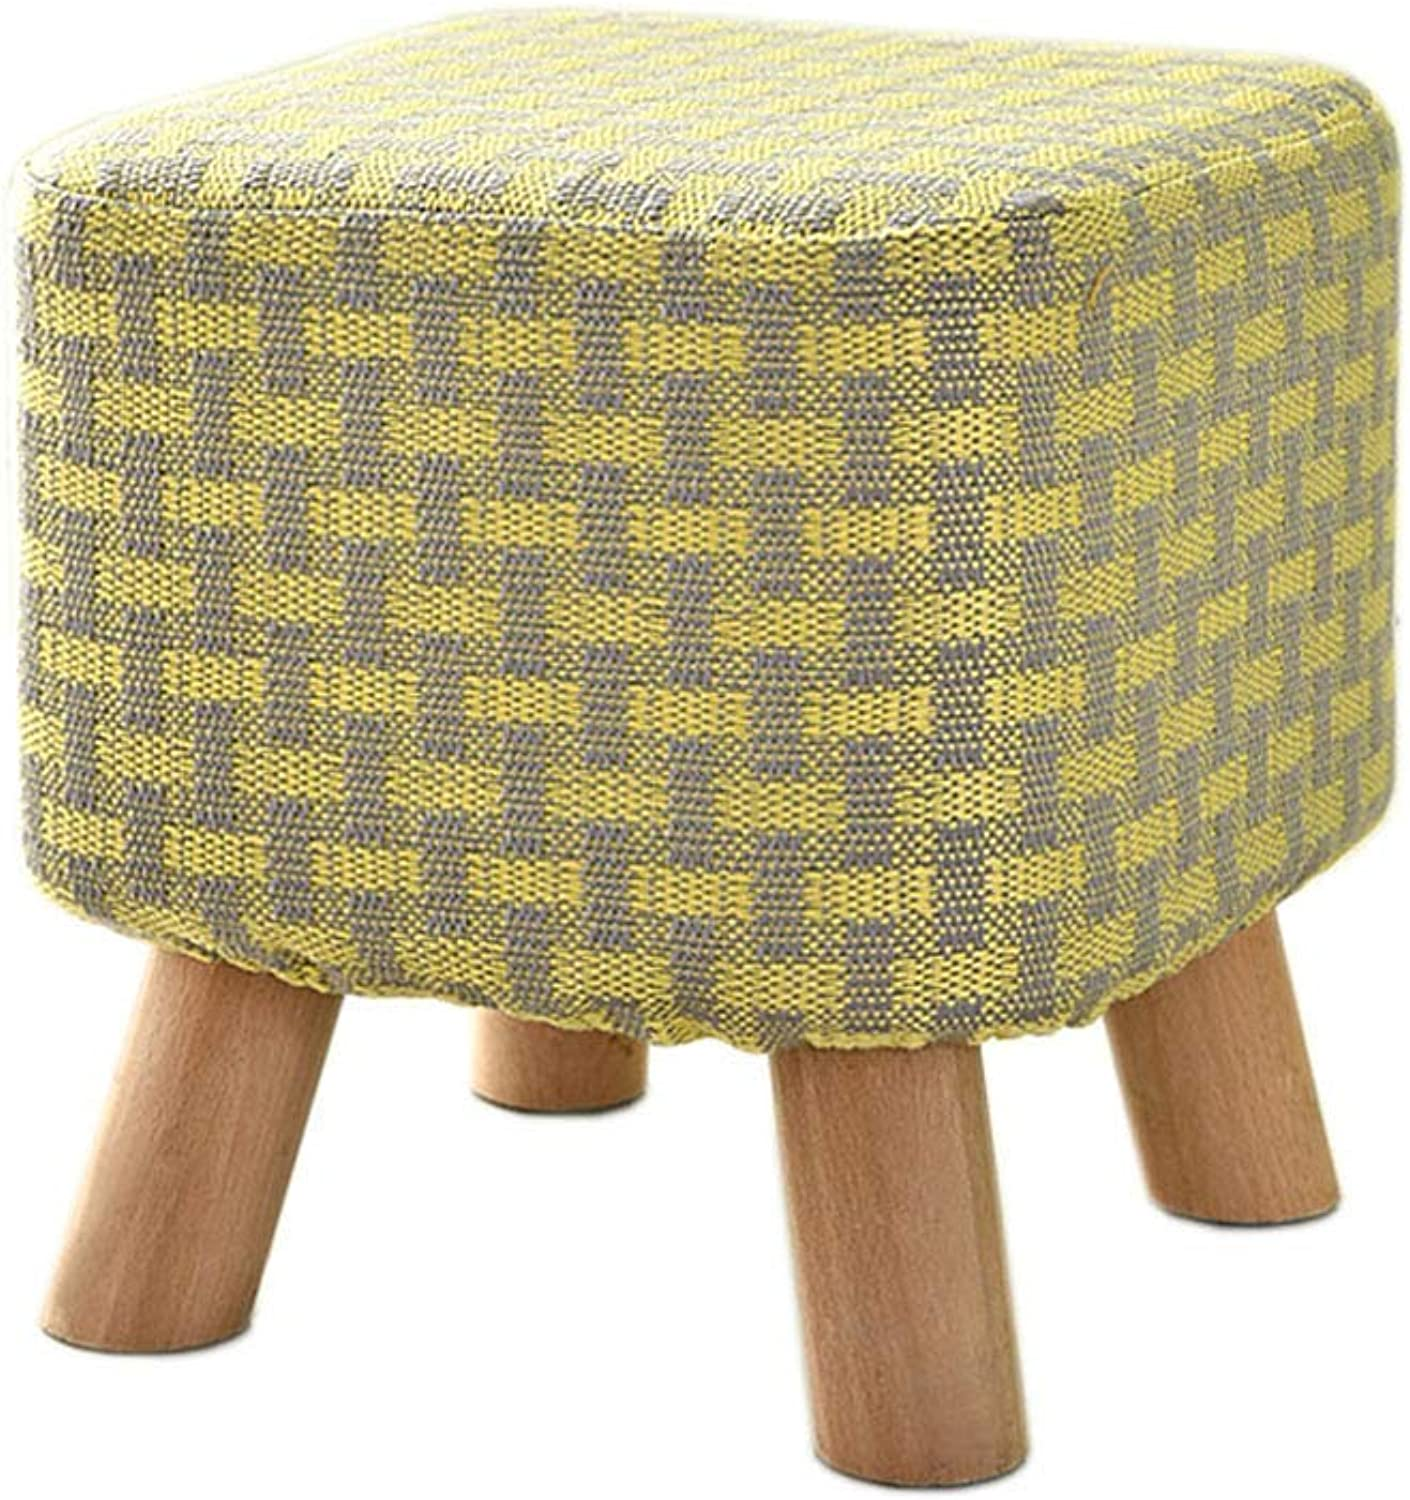 BRNEBN Small Low Stool Sofa UpholsteChange shoes Solid Wood Legs Wear shoes Fabric Bench 4 Legs Padded for Bedroom Living Room